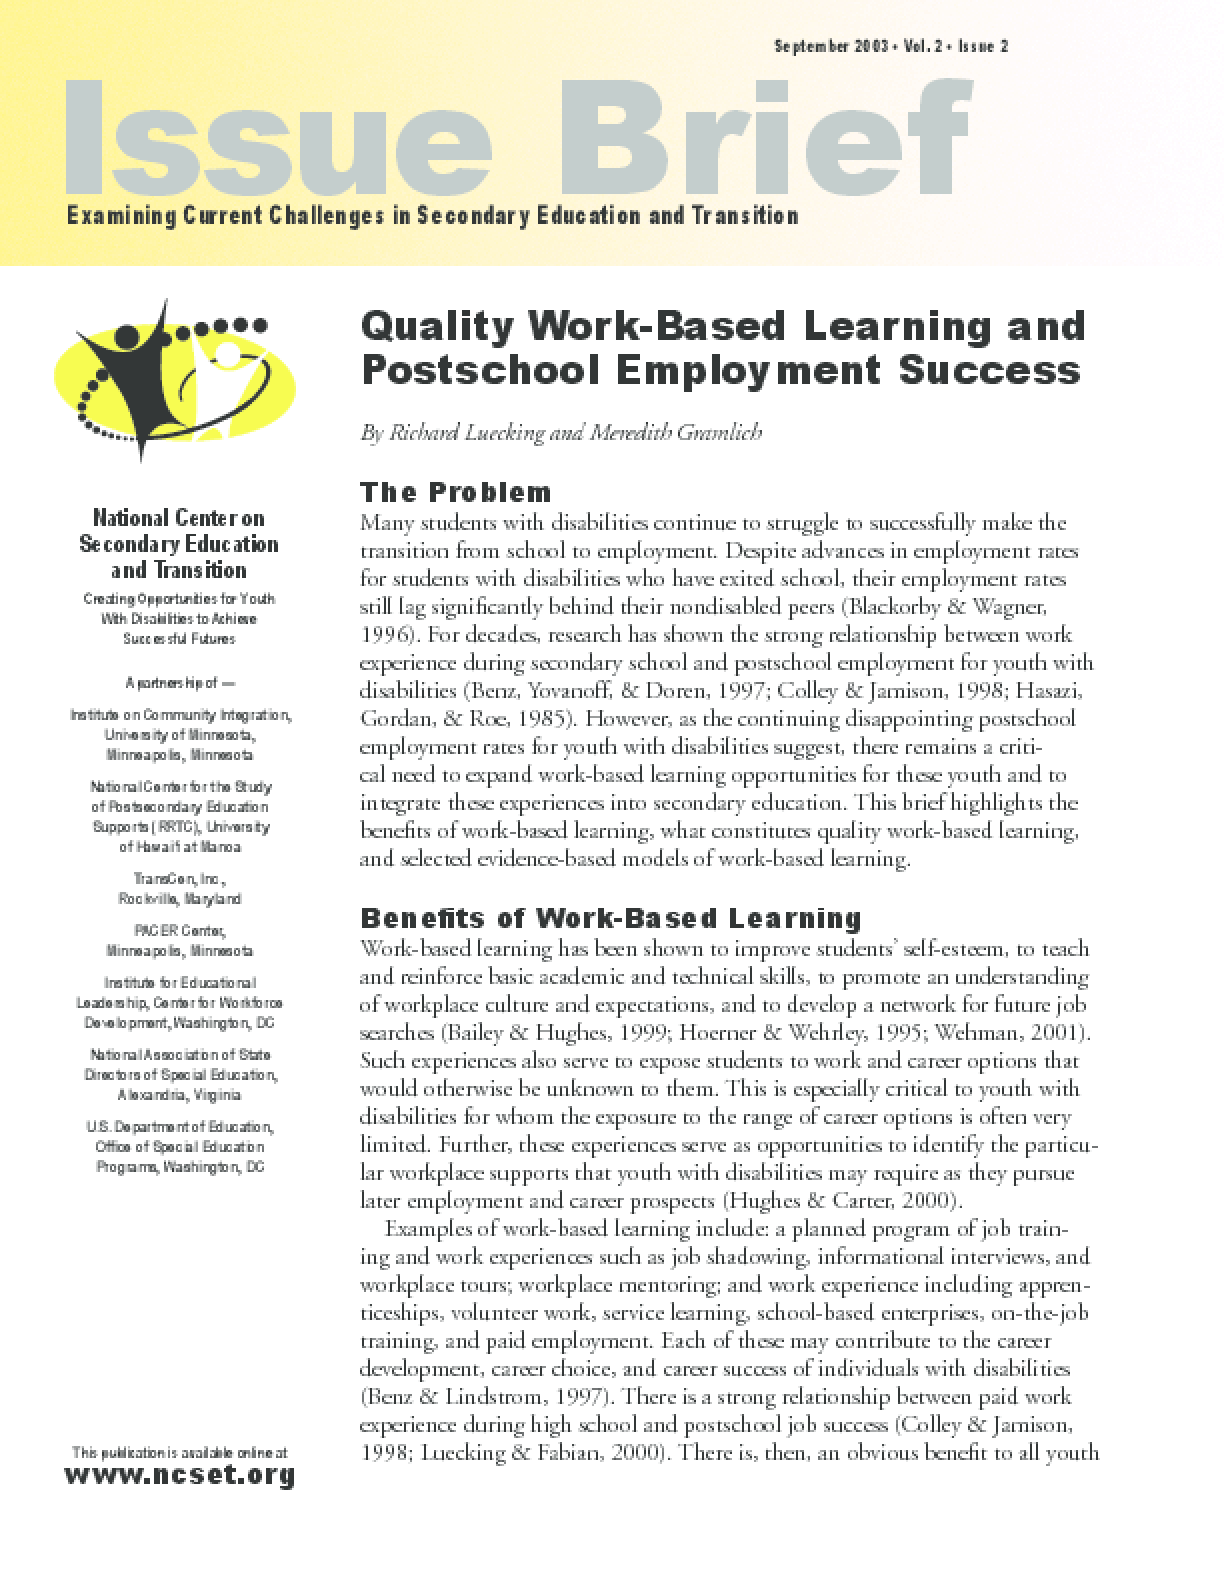 Quality Work-Based Learning and Postschool Employment Success